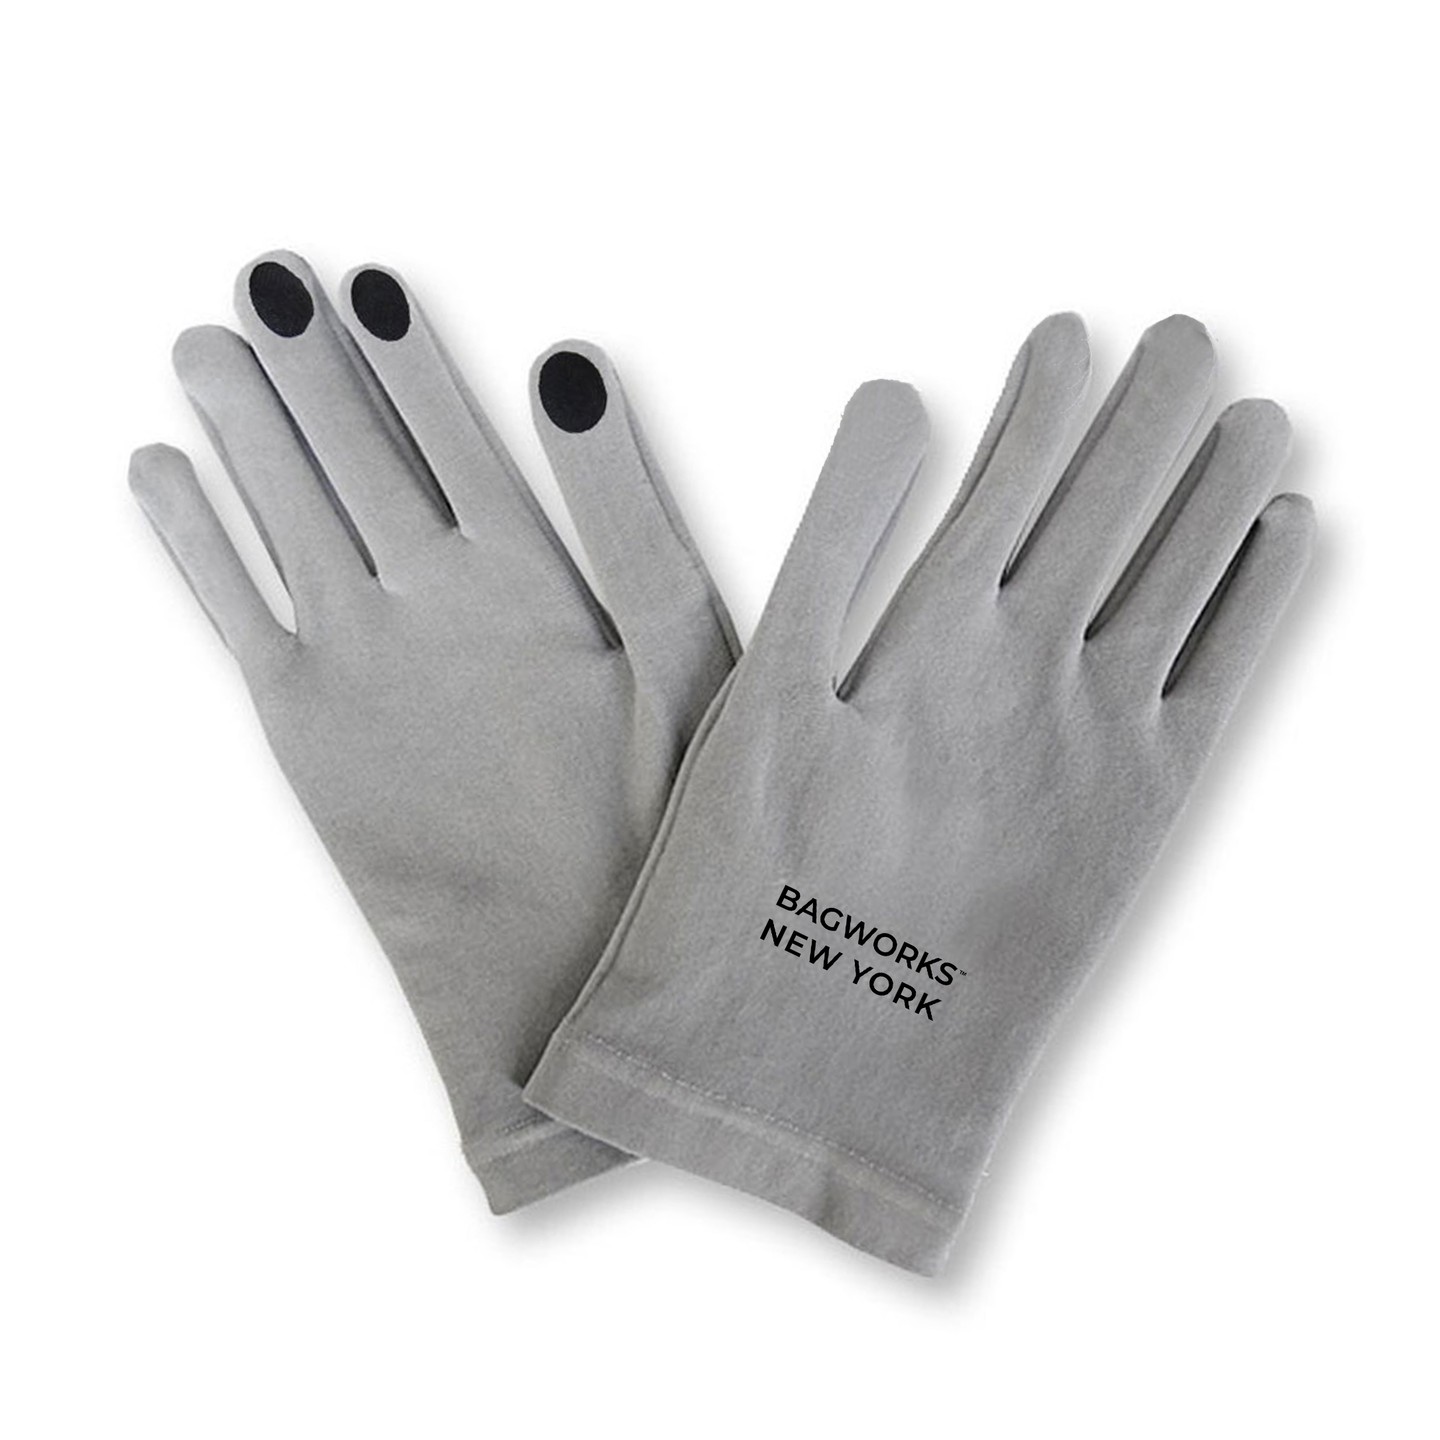 CONTACT BARRIER GLOVES